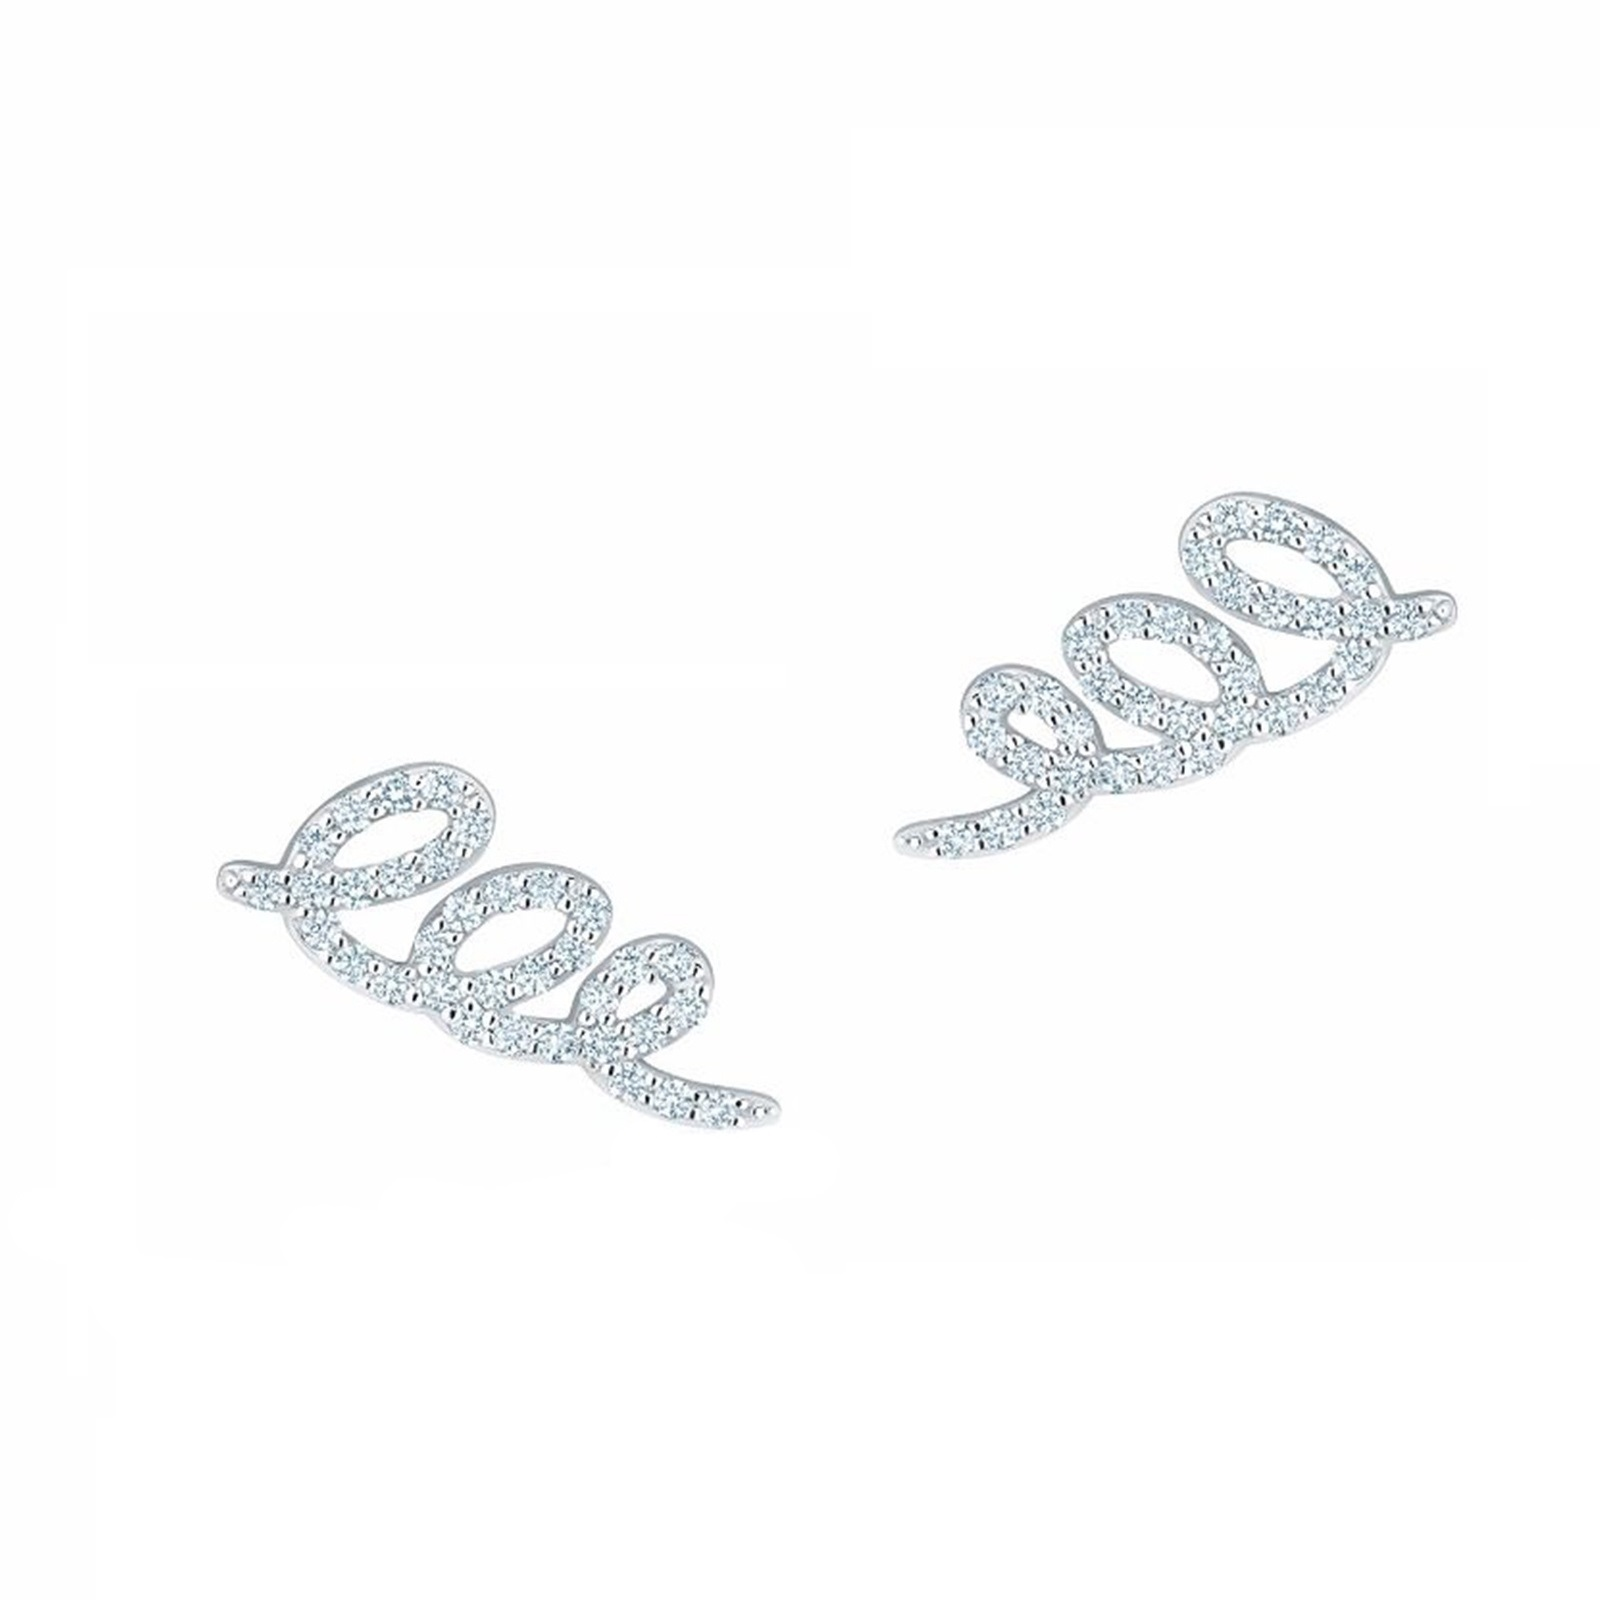 Plaisirs de Birks Diamond Swirl Earrings